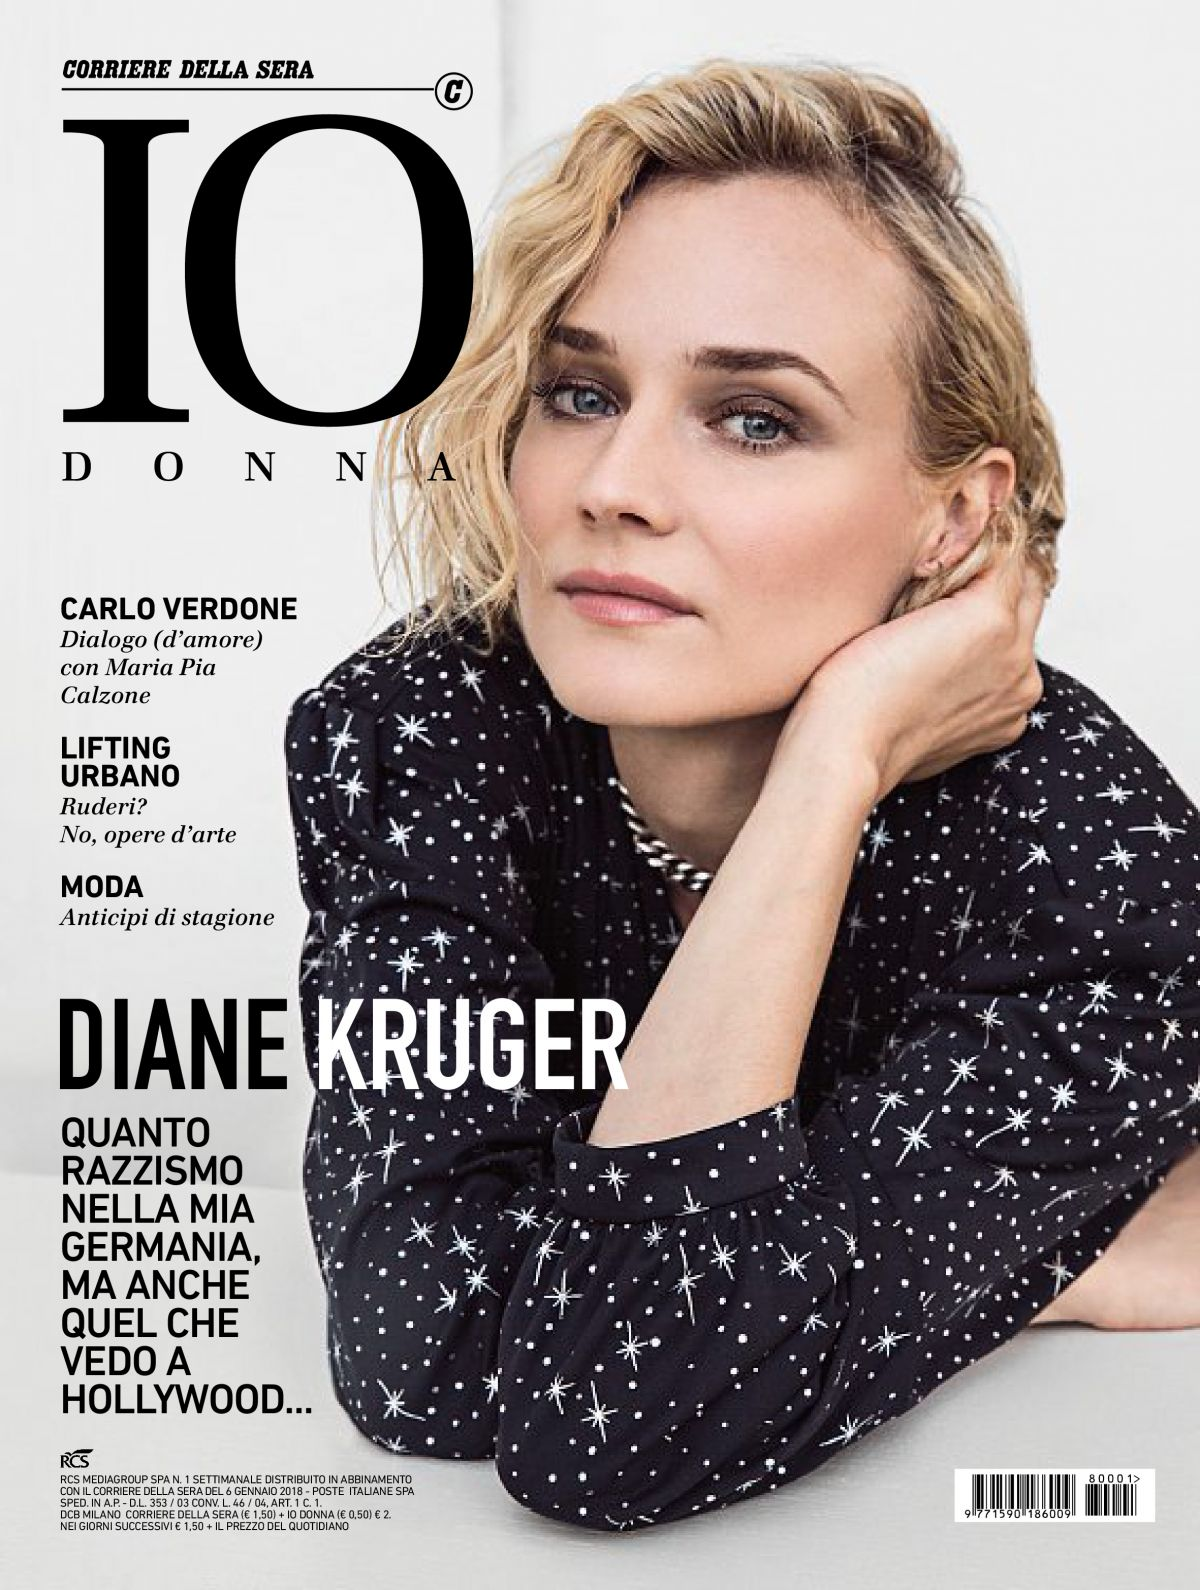 Diane Kruger In Io Donna Del Corriere Della Sera January 2018 issue